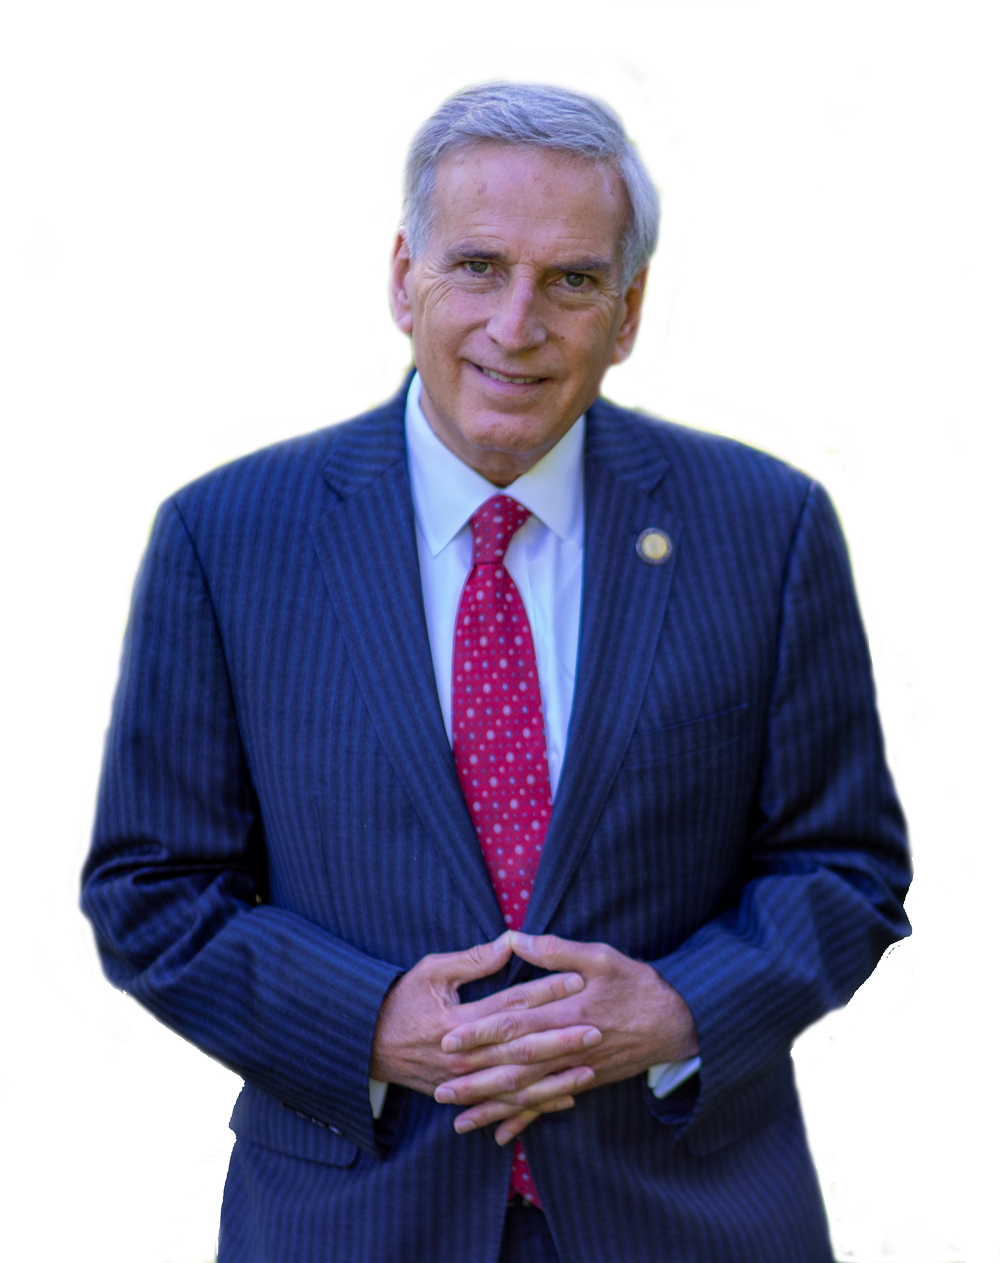 New York City comptroller candidate and Assembly Member David Weprin